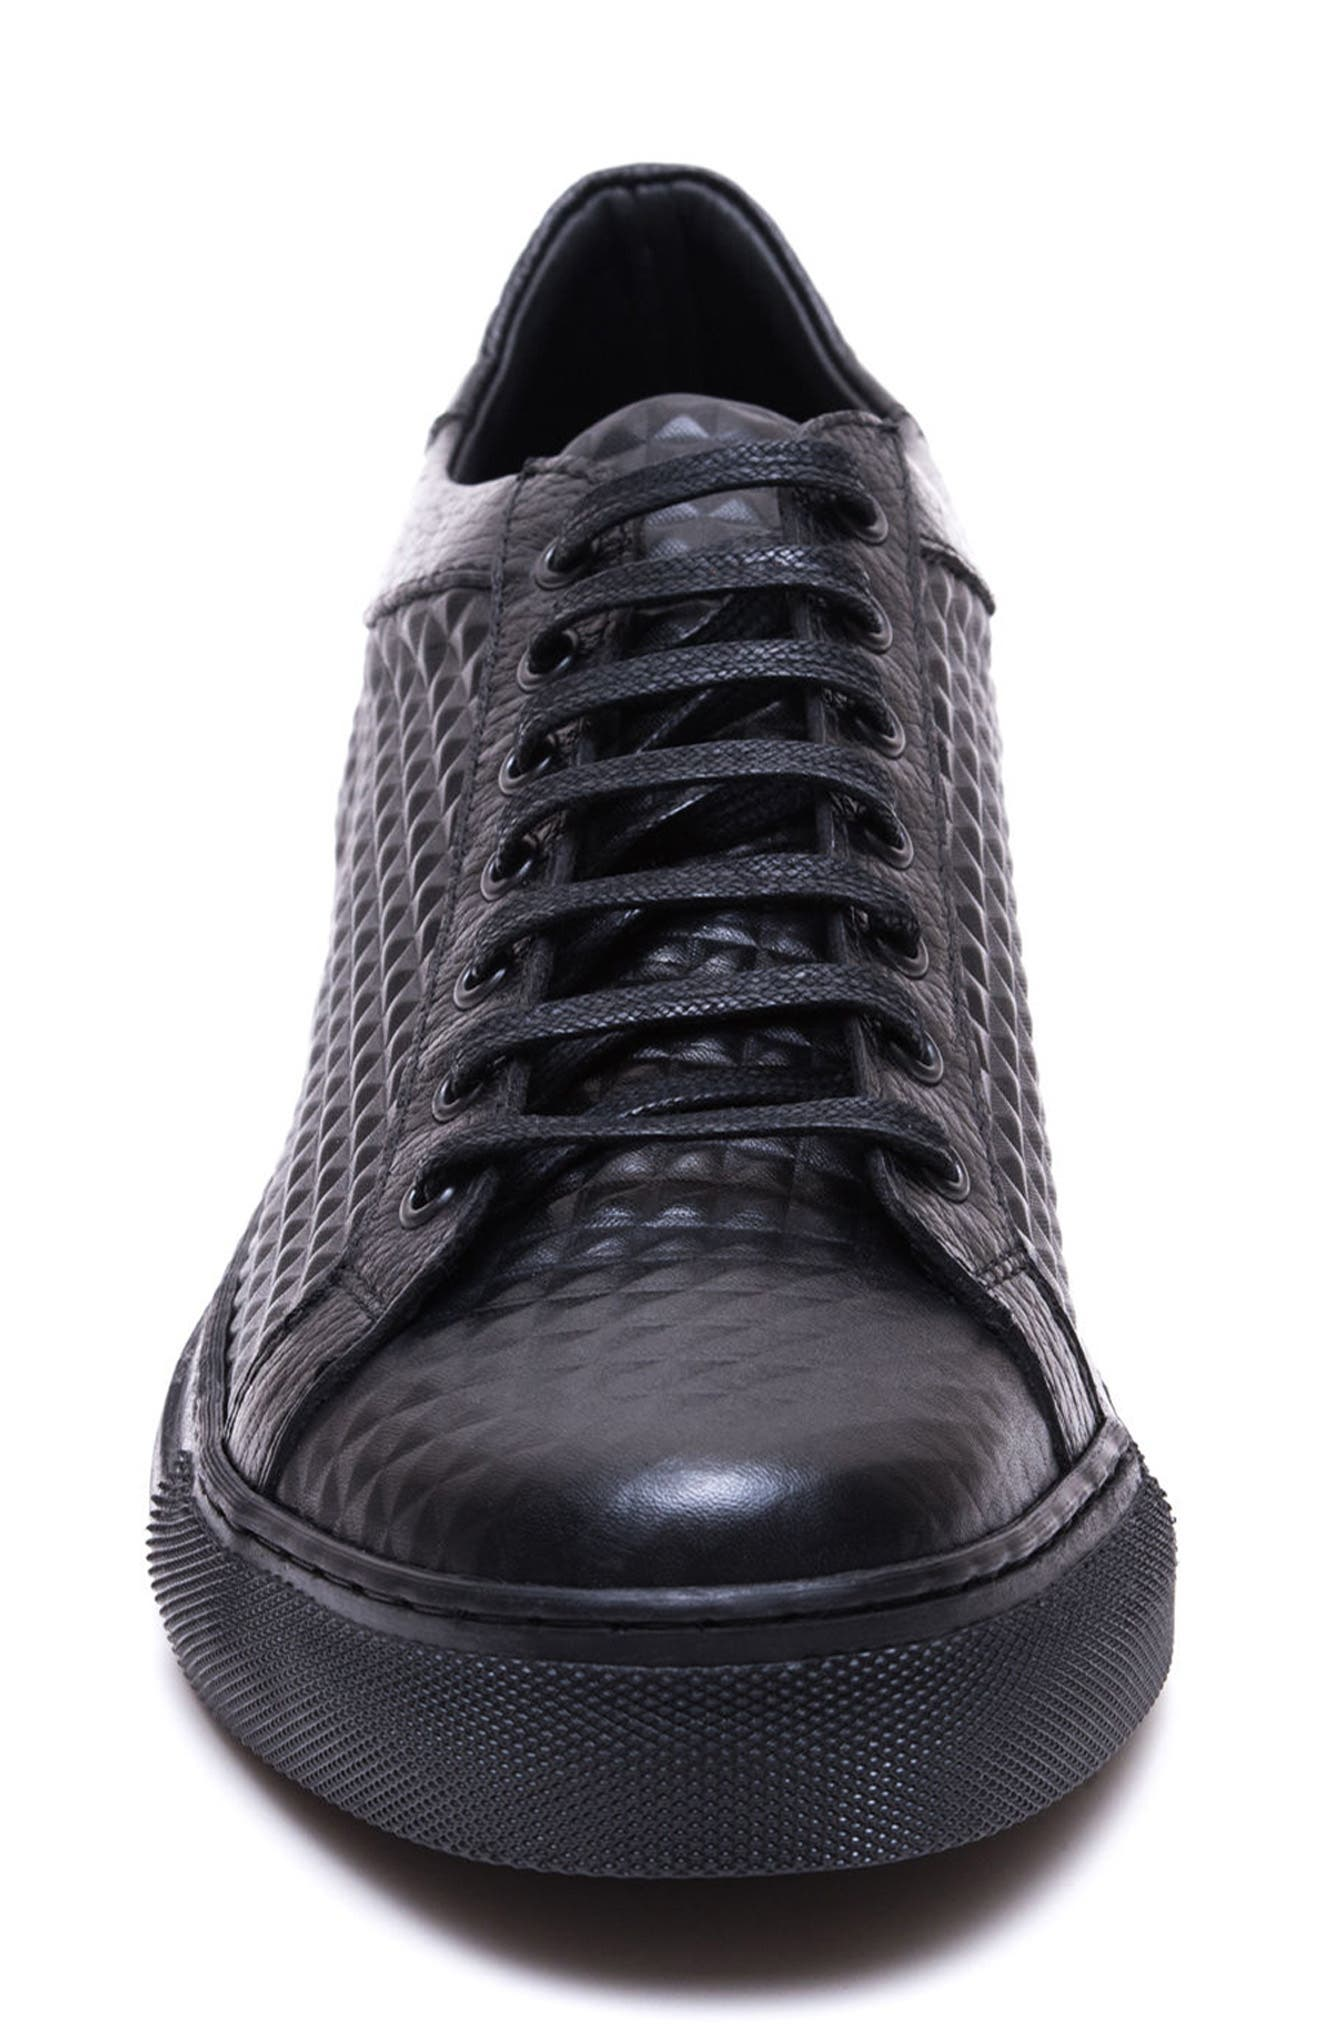 Scott Leather Sneaker,                             Alternate thumbnail 4, color,                             001